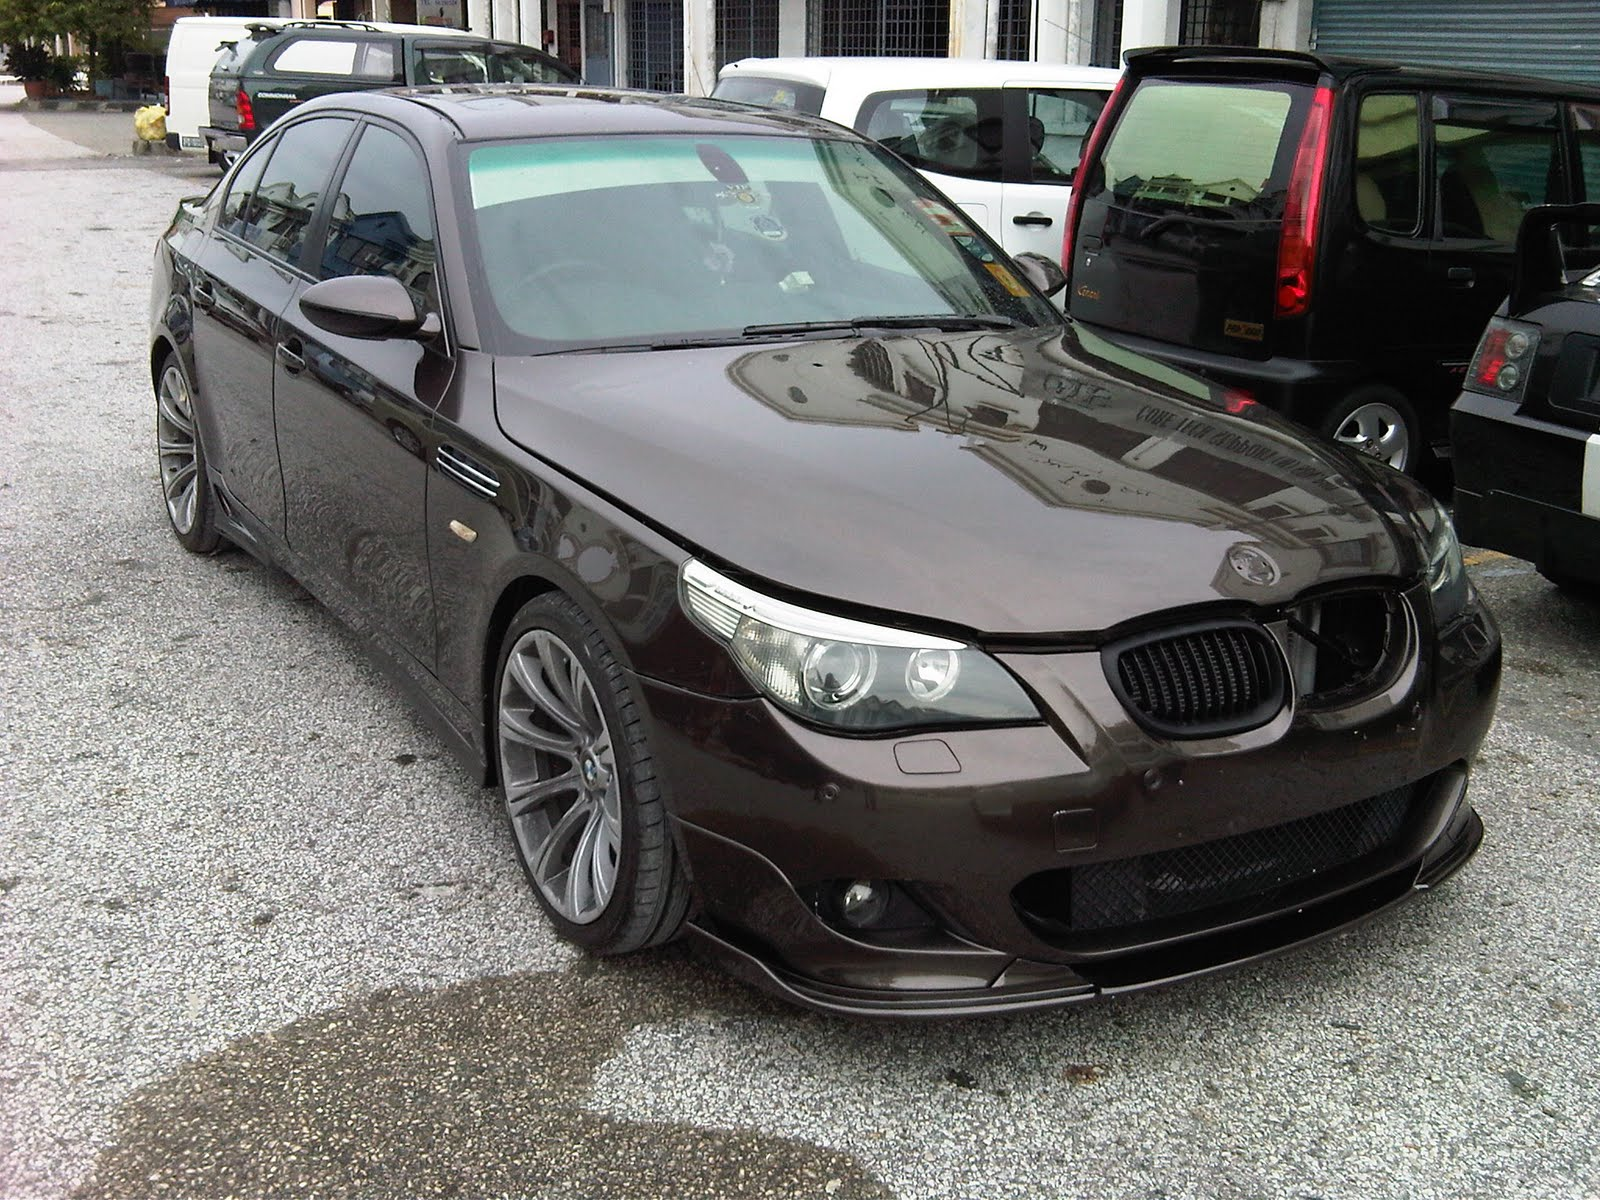 ats painting bodywork bmw e60 hamman conversion. Black Bedroom Furniture Sets. Home Design Ideas